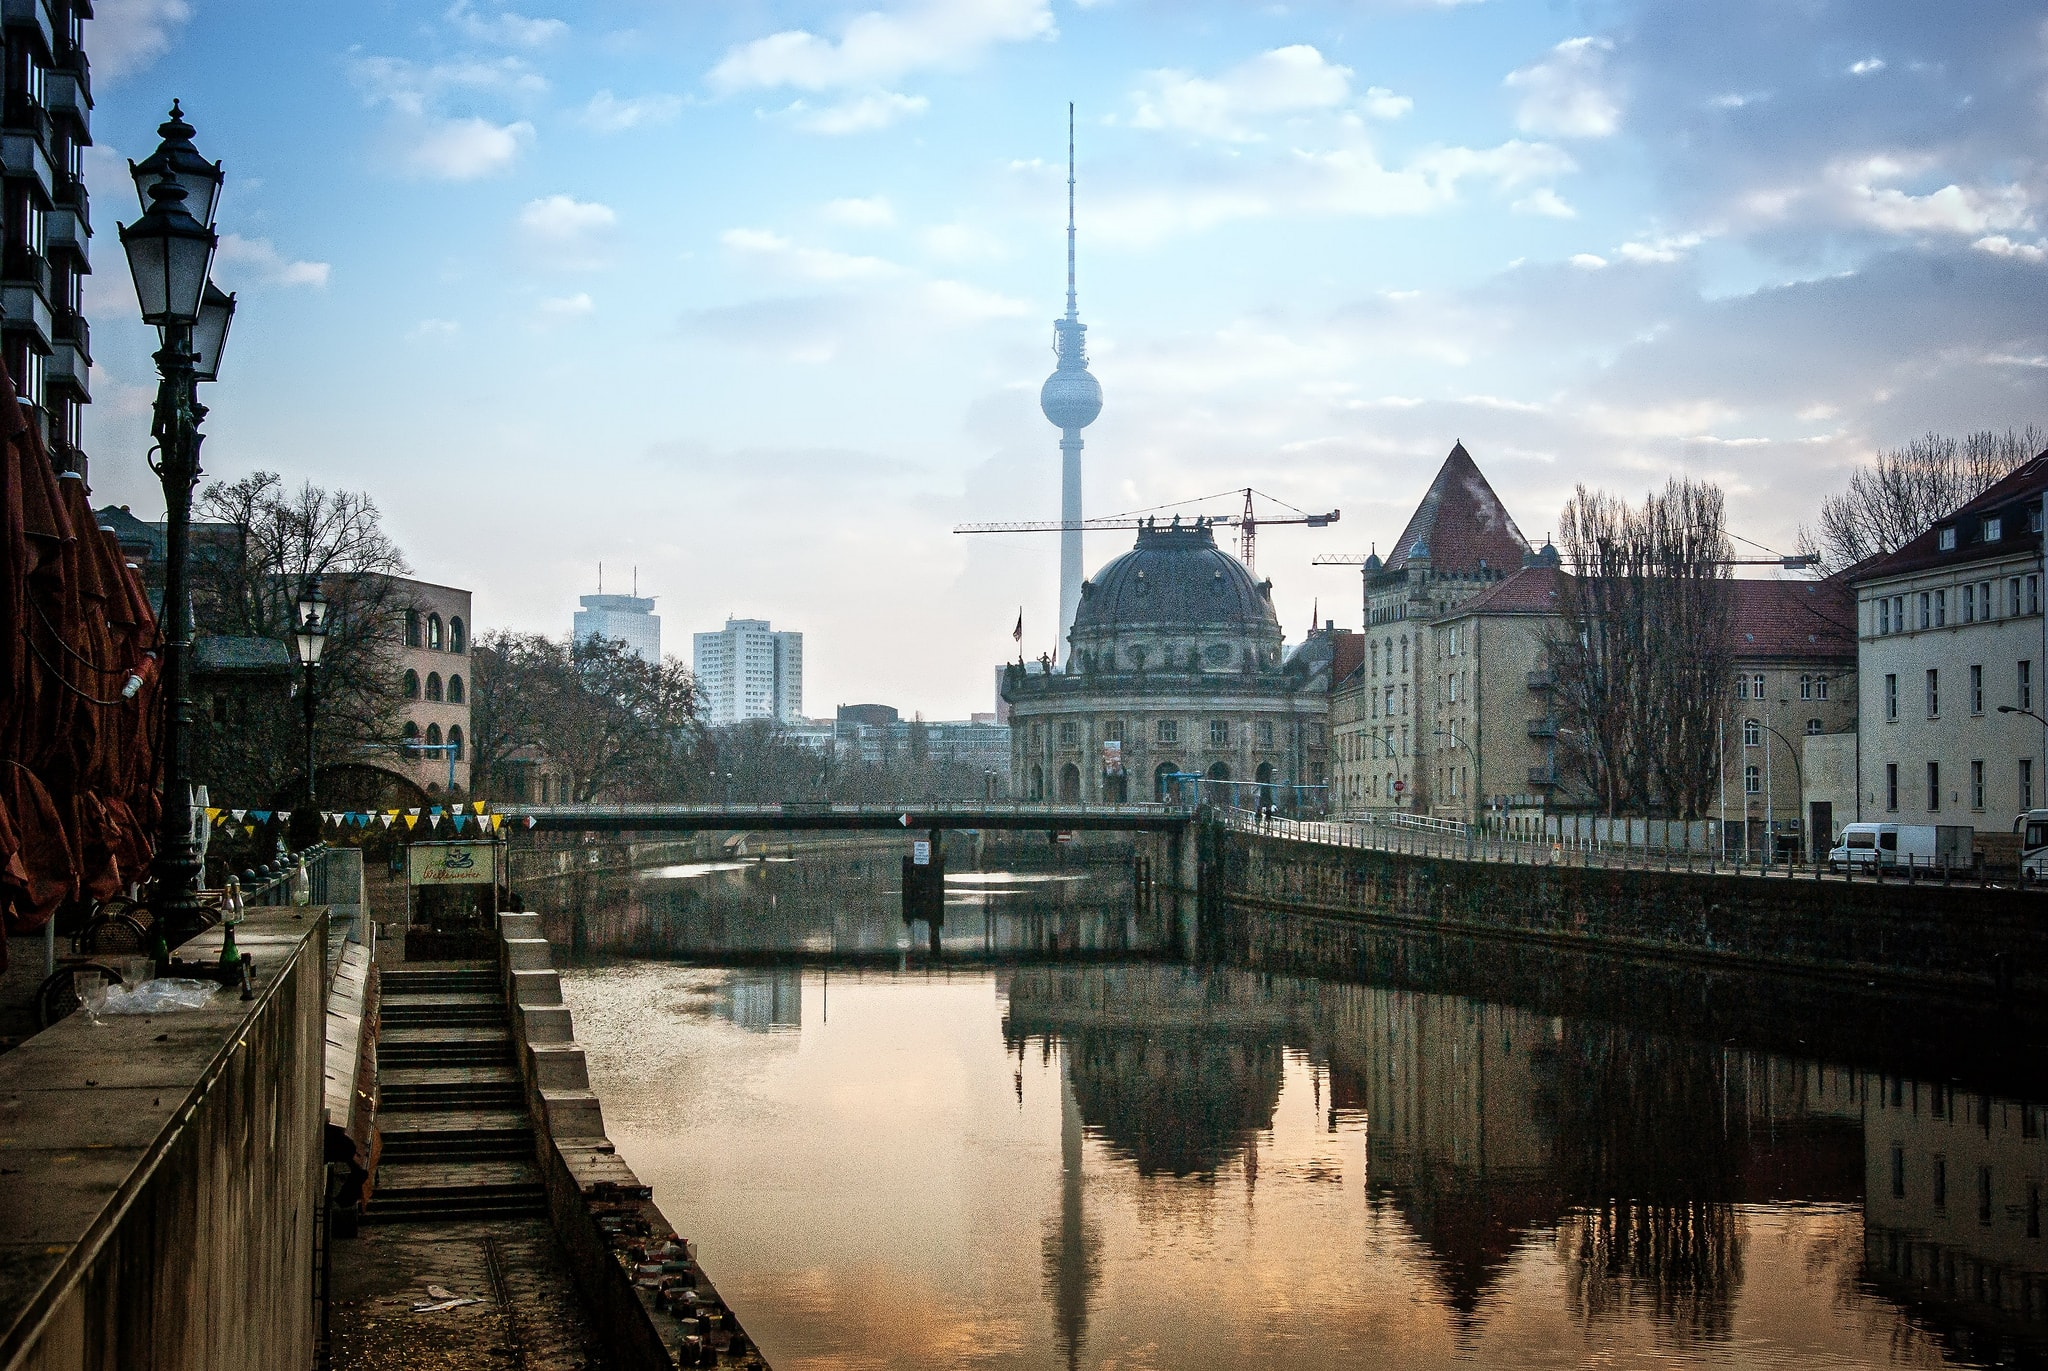 10 Reasons Why Berlin Should Be on New Year's Resolutions List